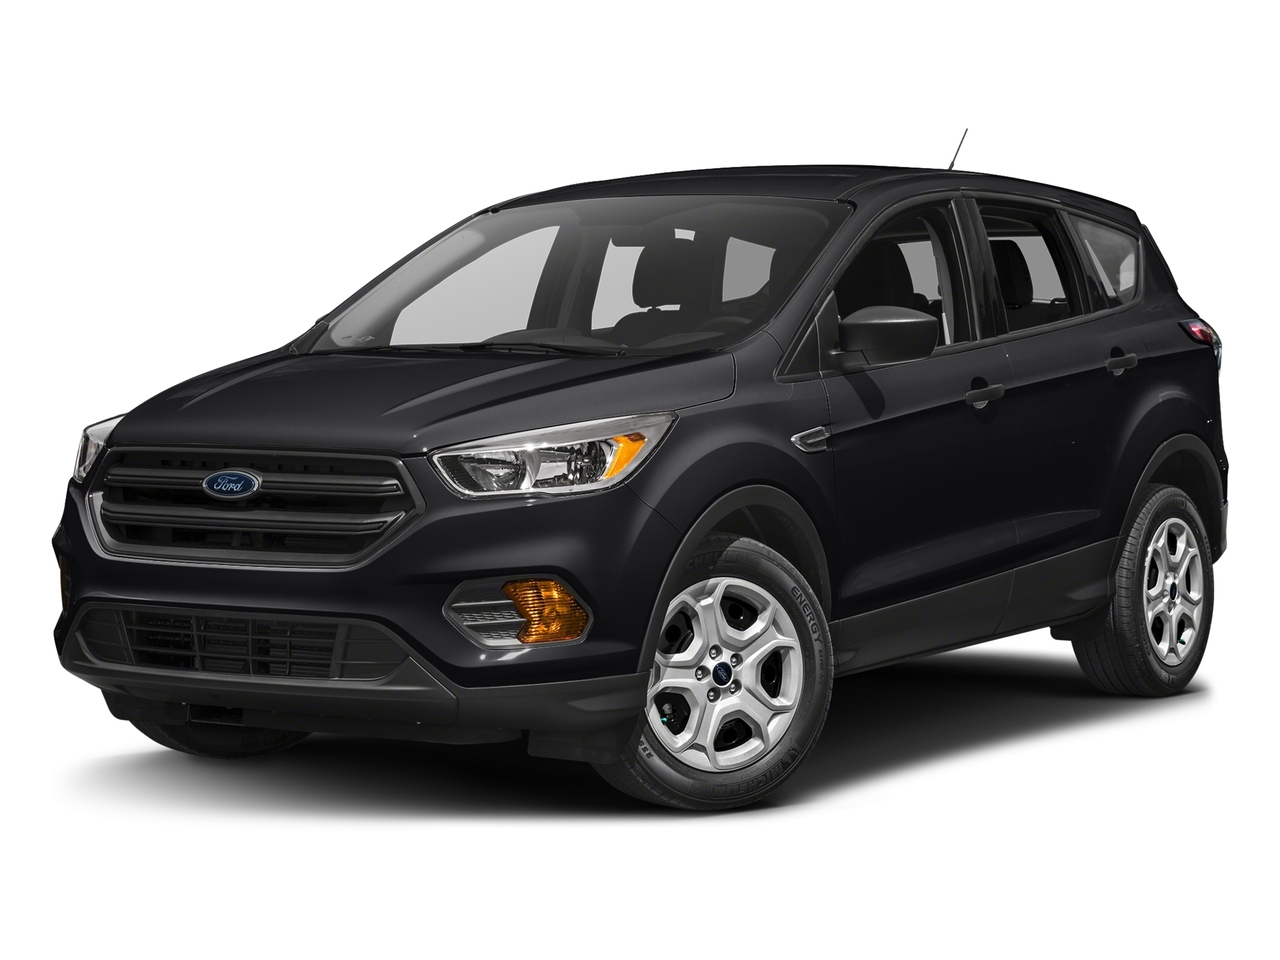 2017 Ford Escape S SUV Slide